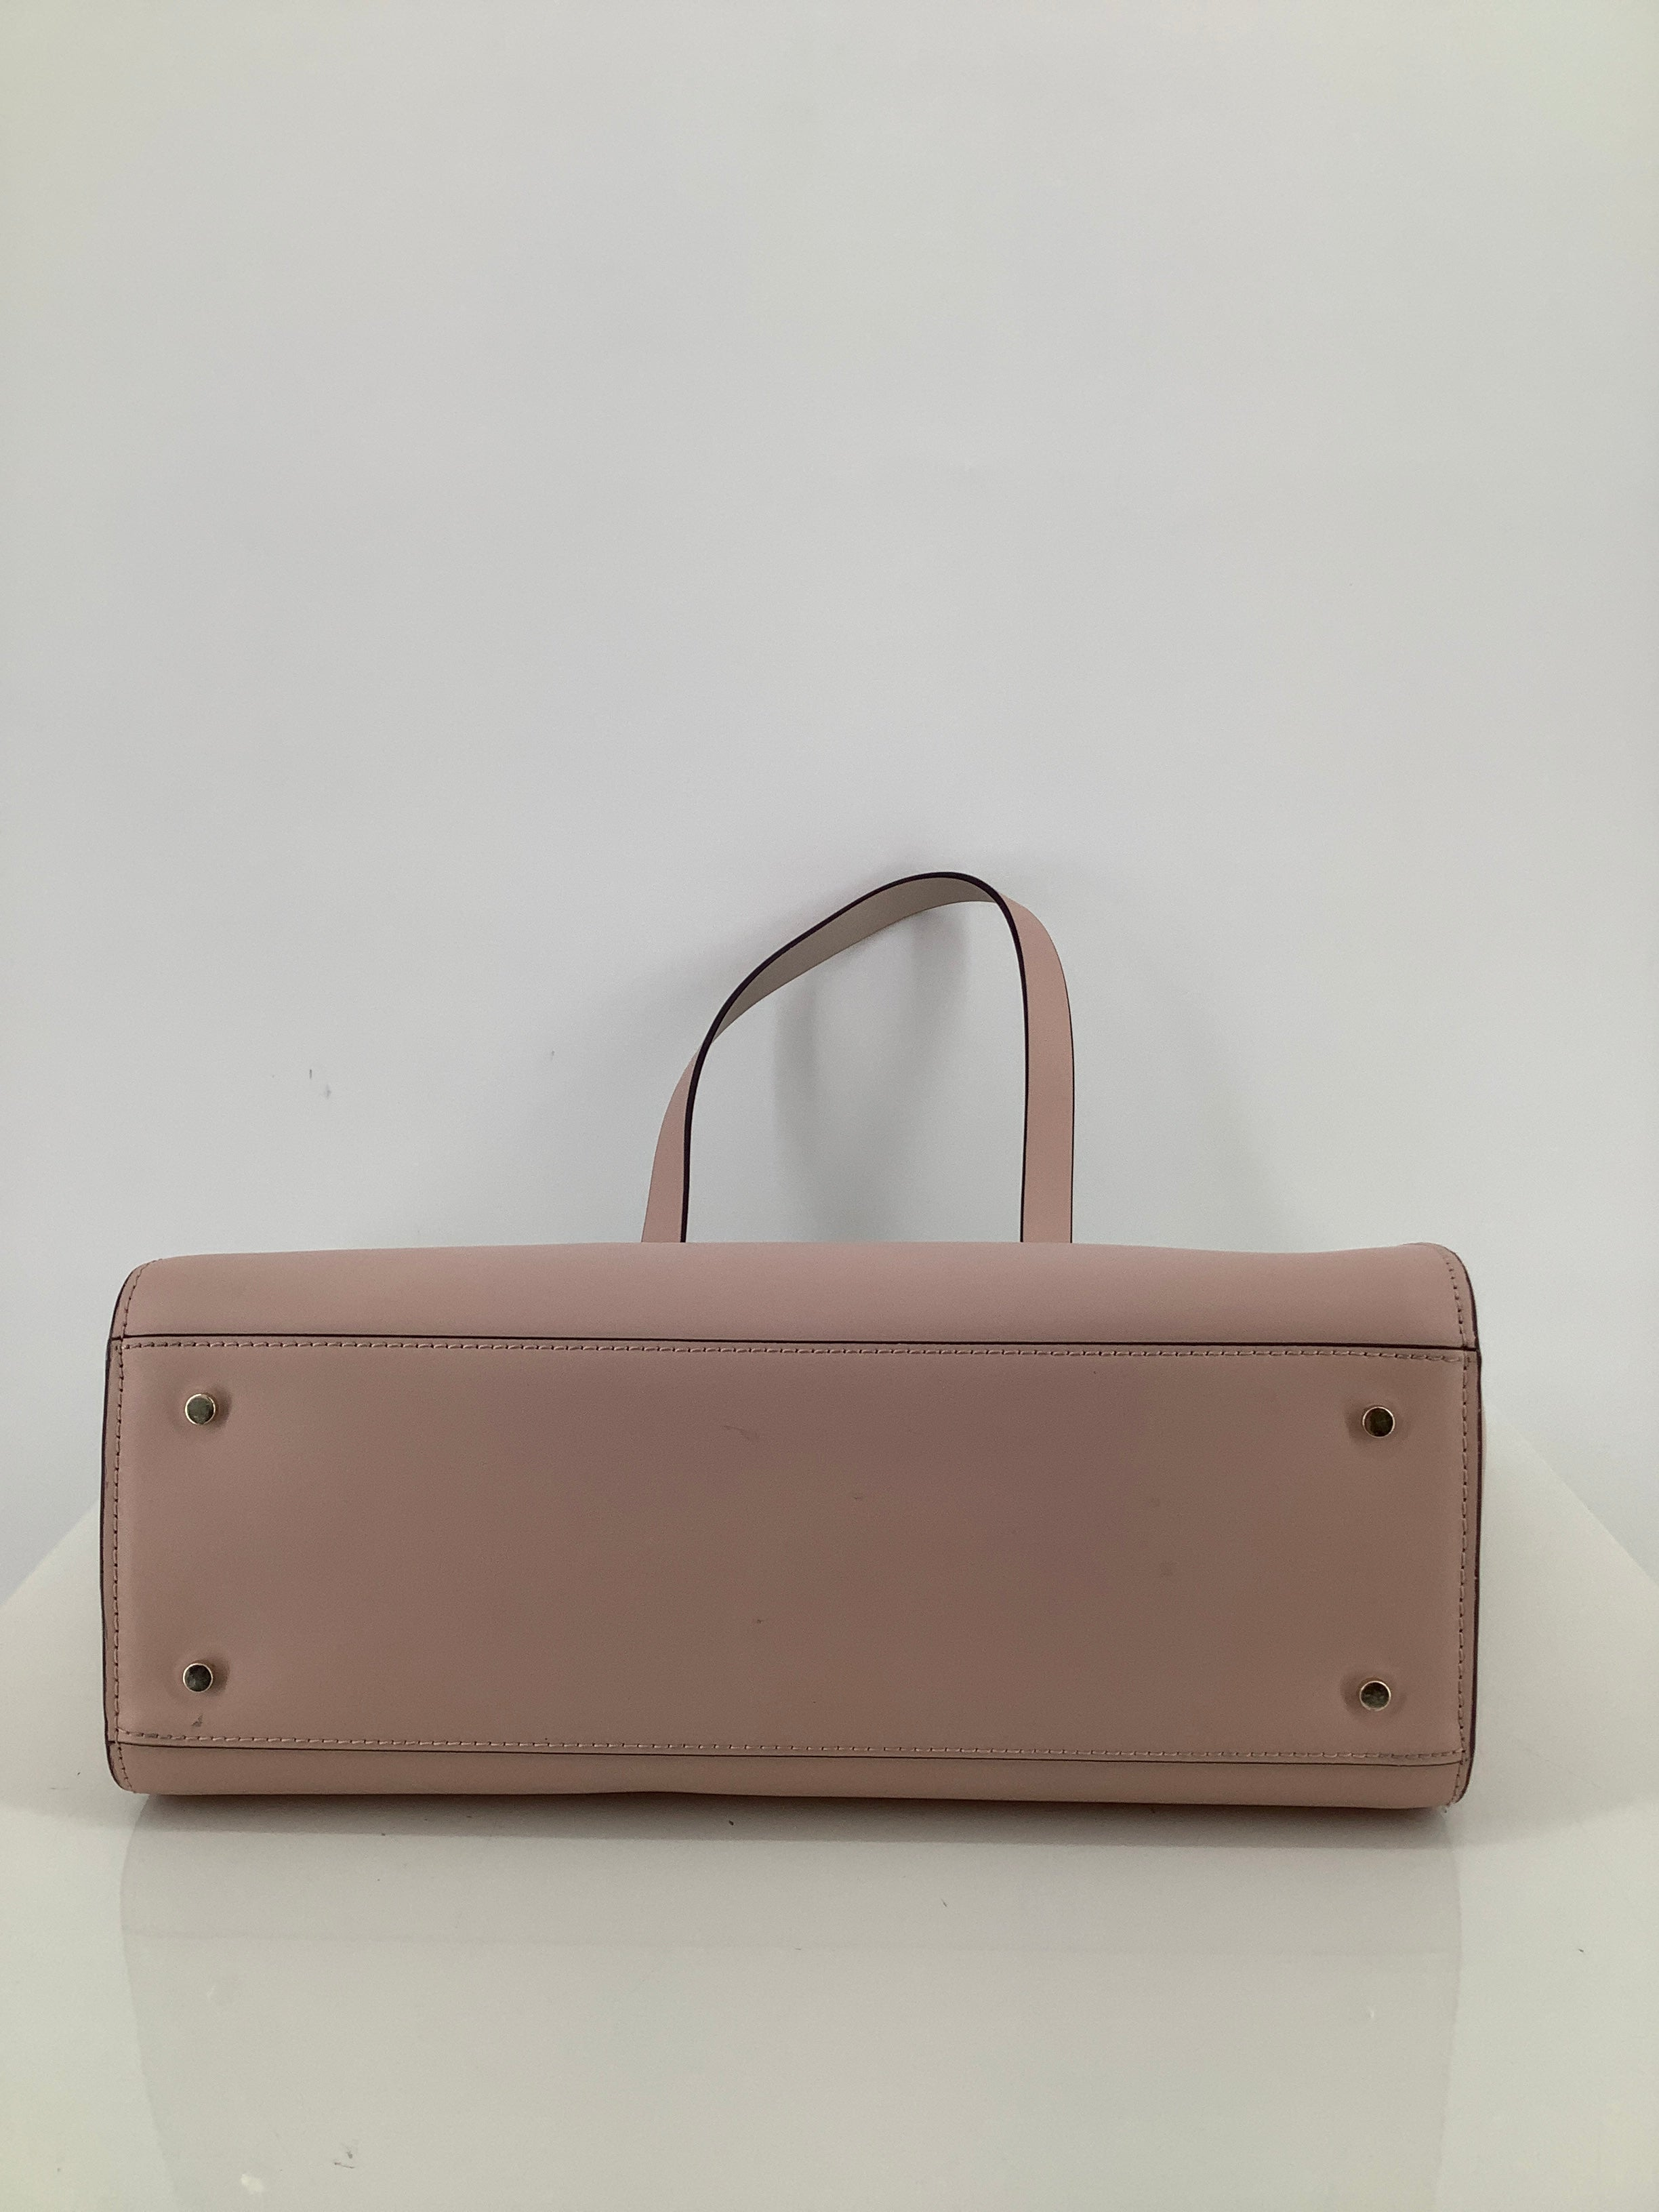 Photo #3 - BRAND: KATE SPADE , STYLE: HANDBAG DESIGNER , COLOR: PINK , SIZE: LARGE , SKU: 105-4940-4698